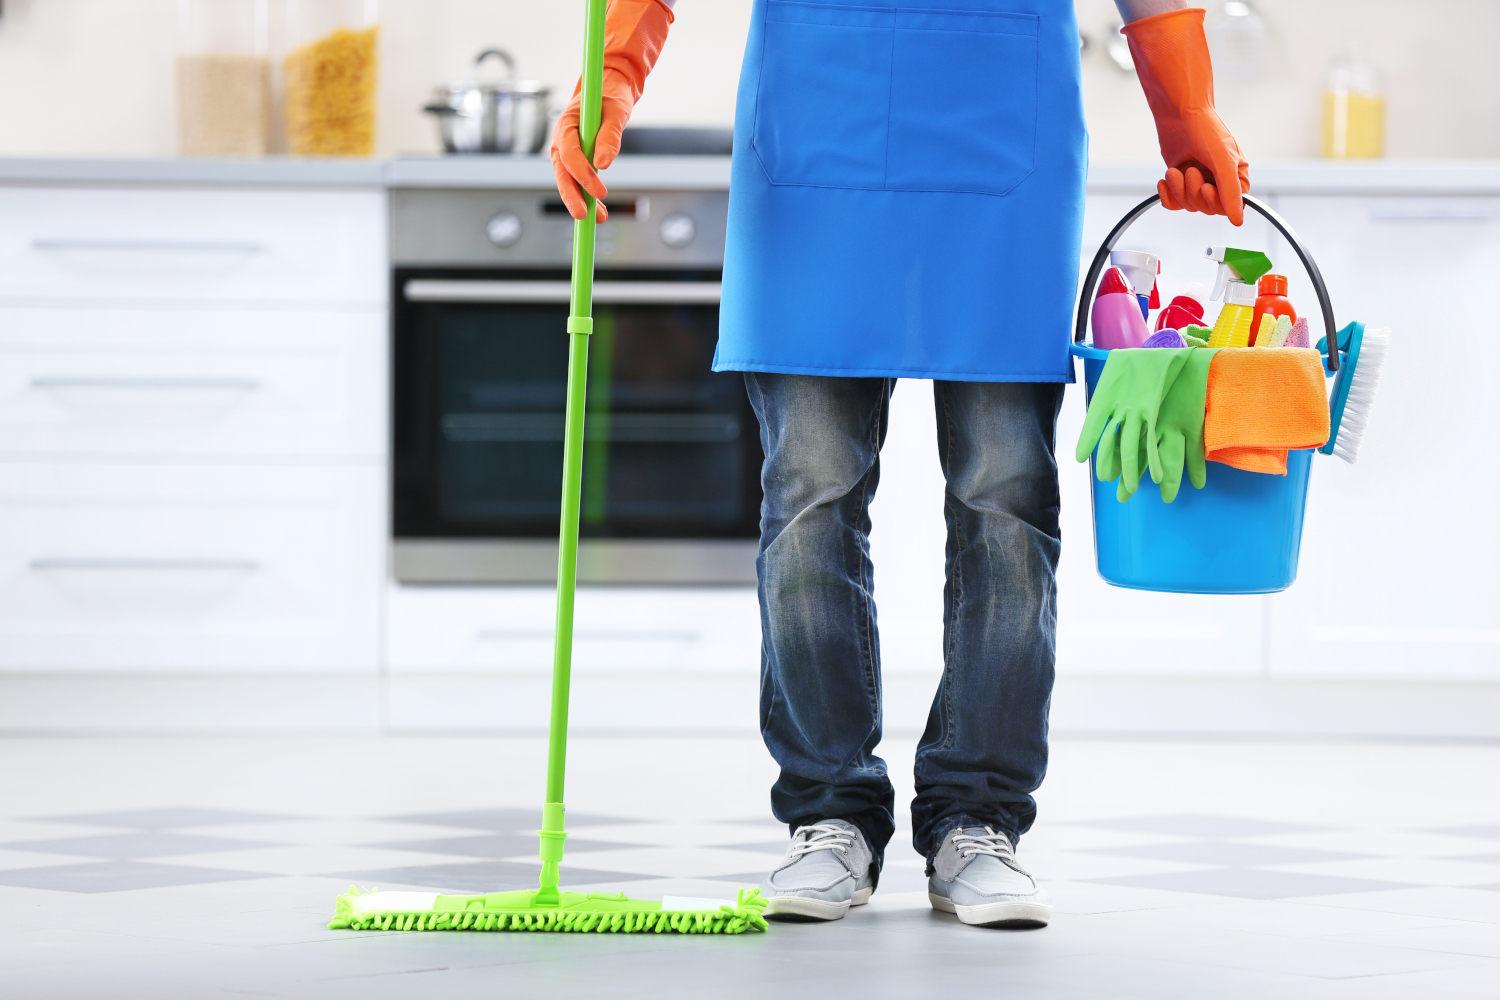 Cleaning and Safety